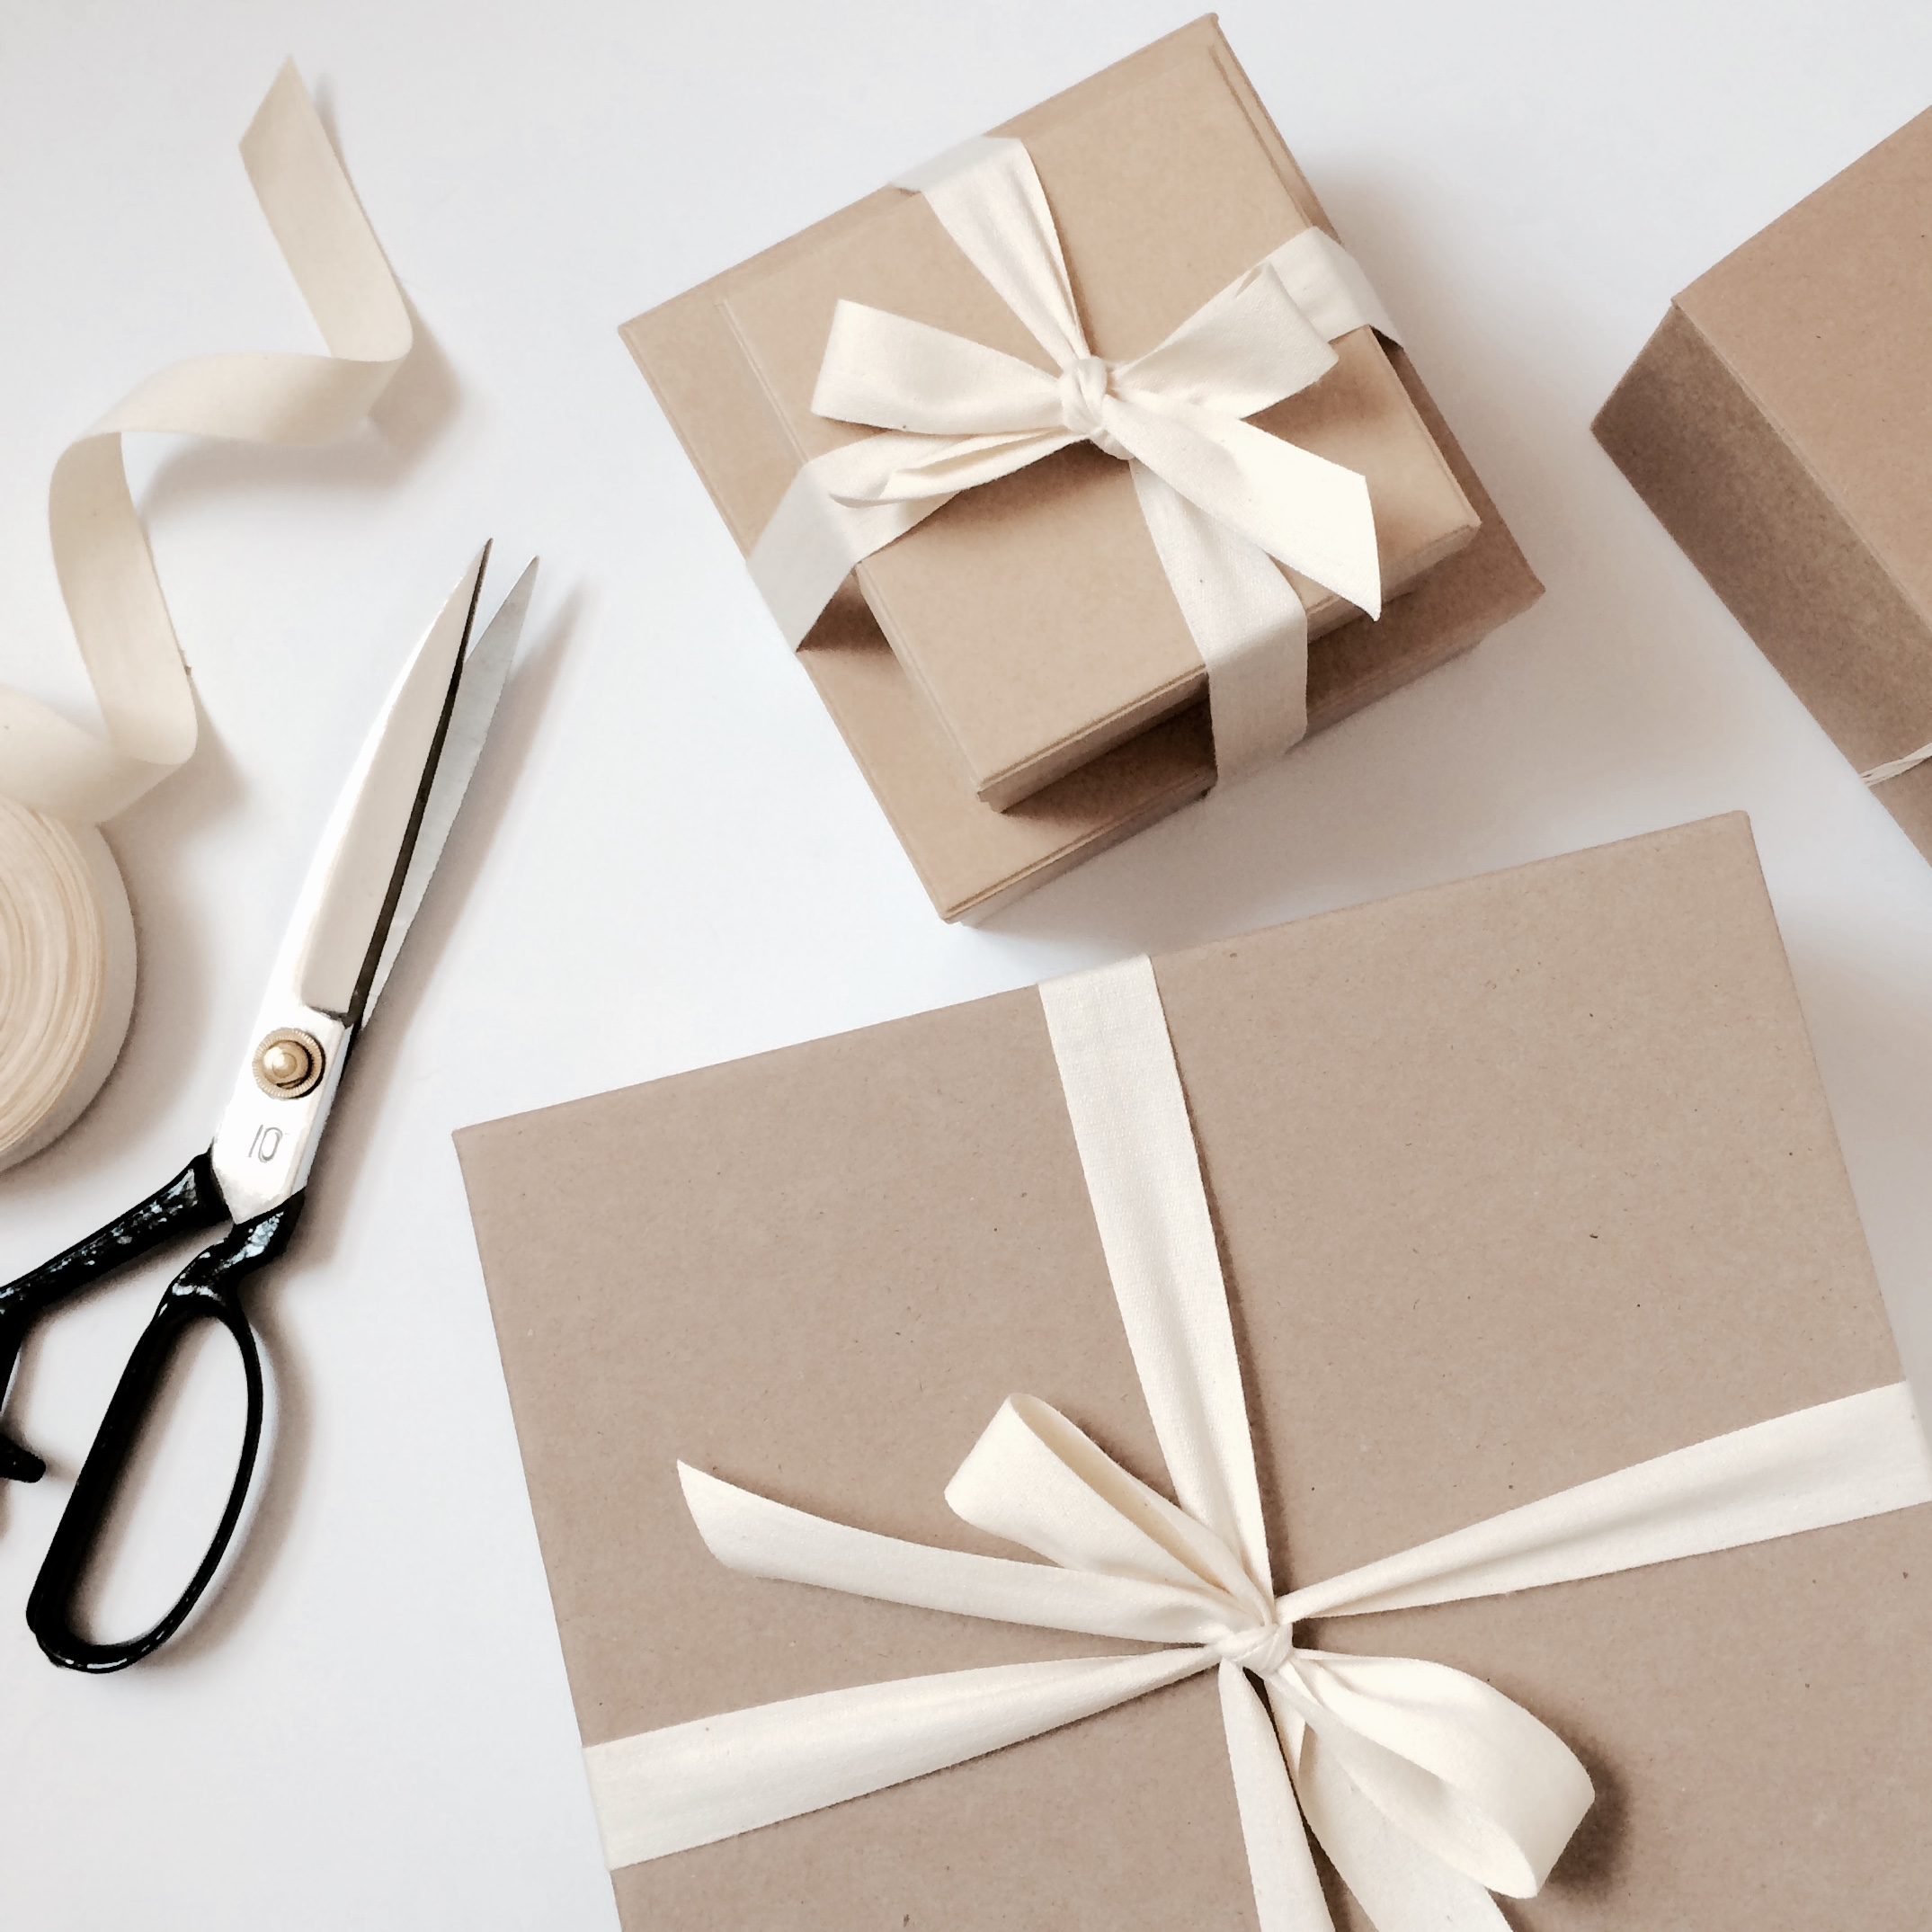 4. Wrapping begins - Once you've approved the design, my team and I get busy wrapping! Gifts will be carefully packaged to impeccable perfection to create that Wow experience, from the inside out. Along the way, we'll keep you up to date on the project's progress.